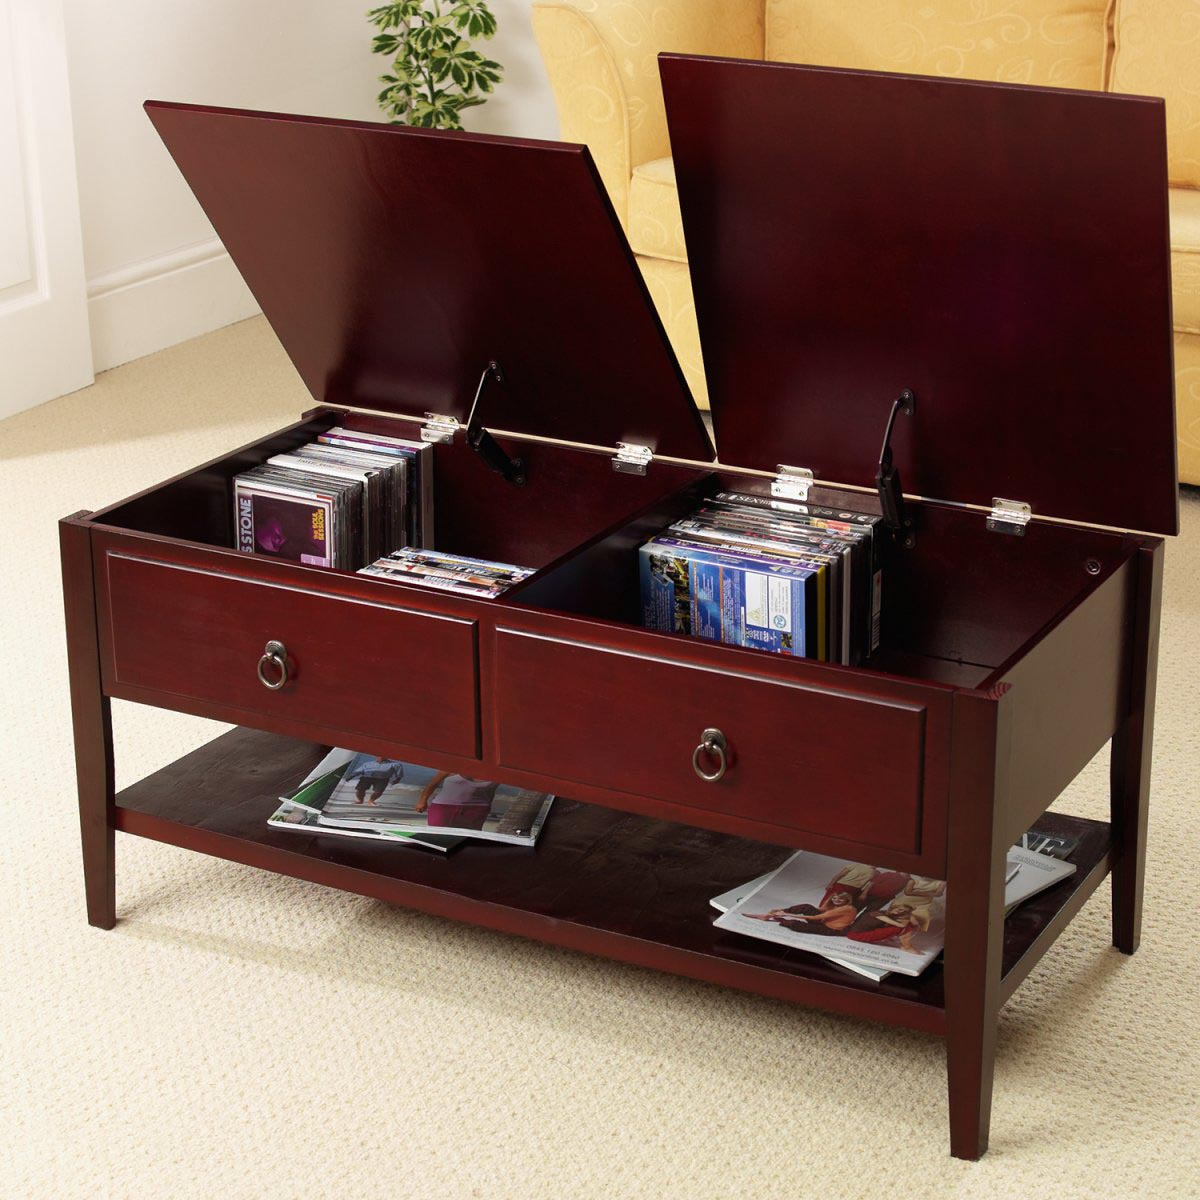 Mahogany Coffee Tables With Storage Table Design